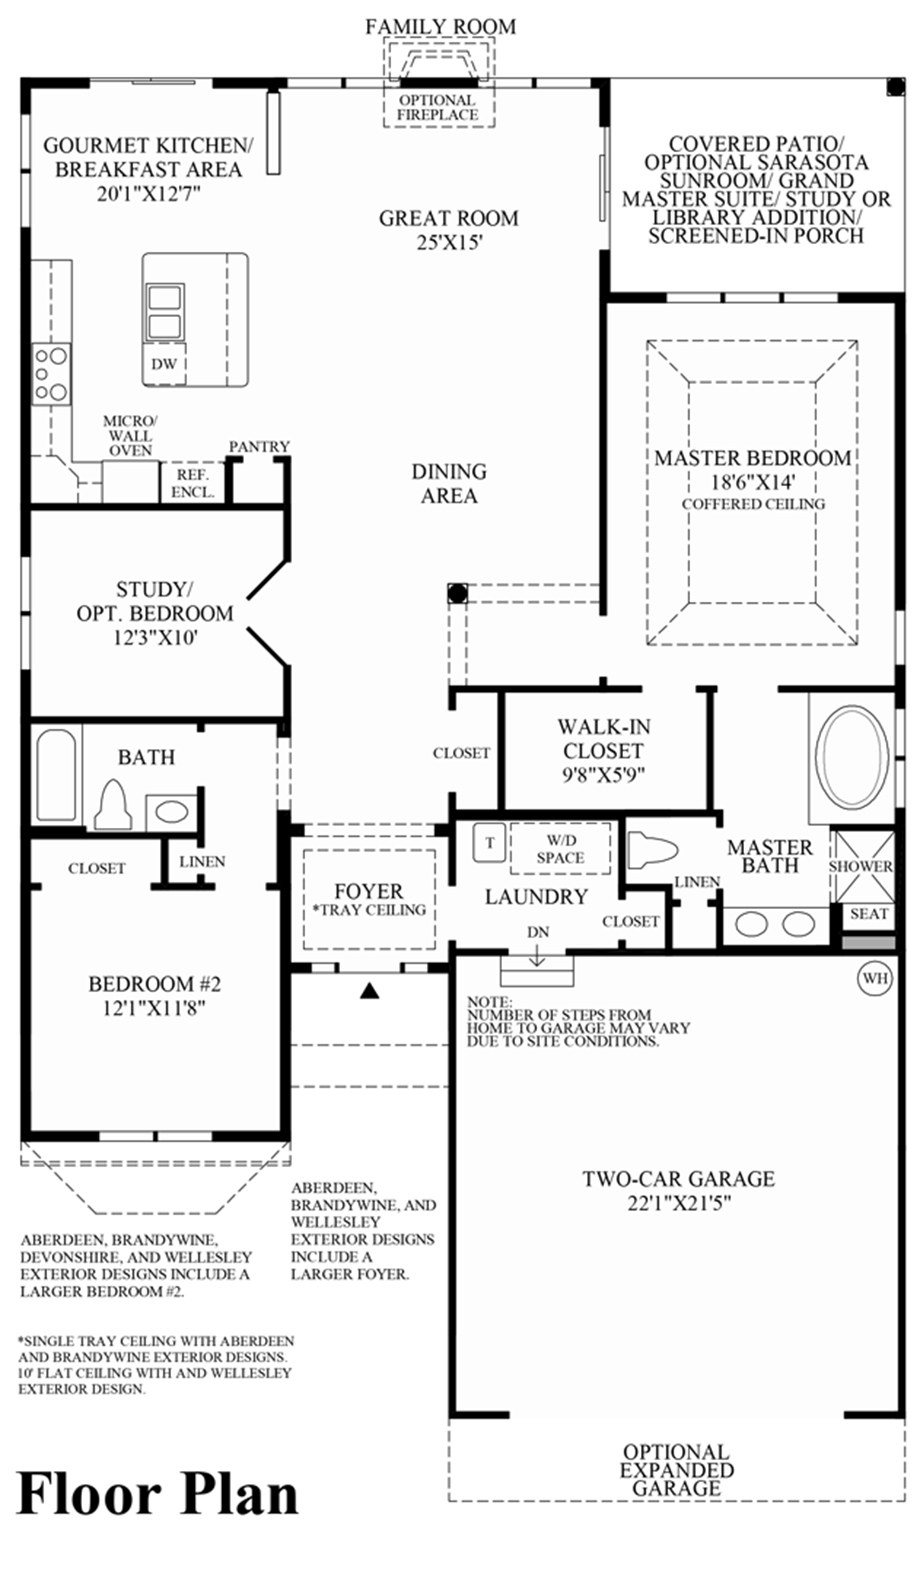 Master Bedroom Suite Floor Plans Additions Regency At Palisades The Corsica Home Design